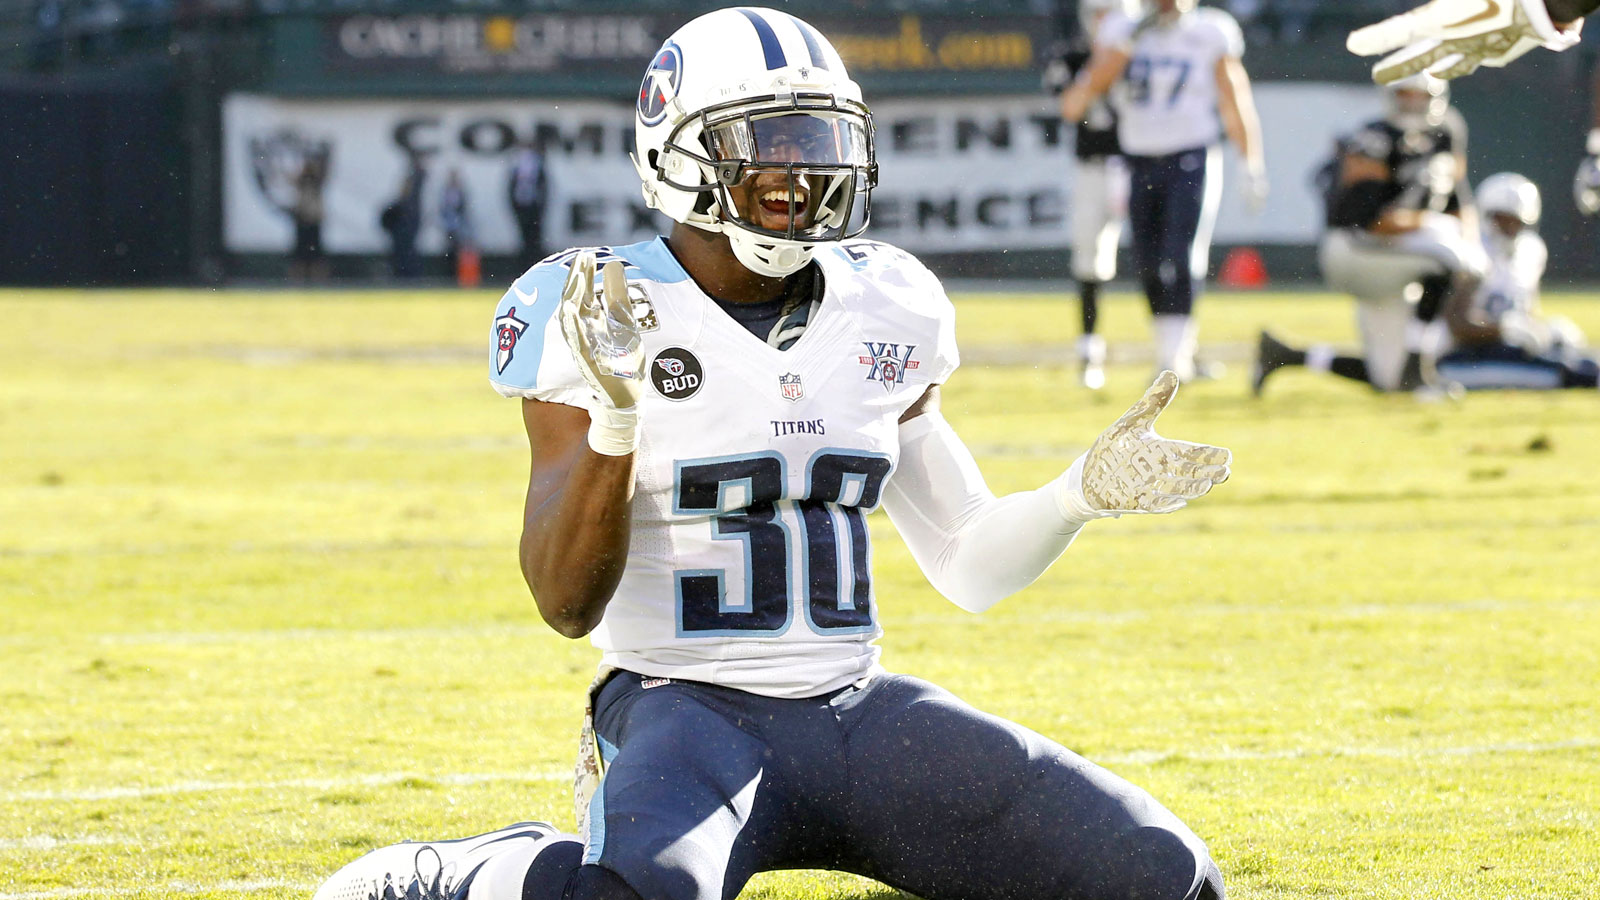 titans-jason-mccourty-white